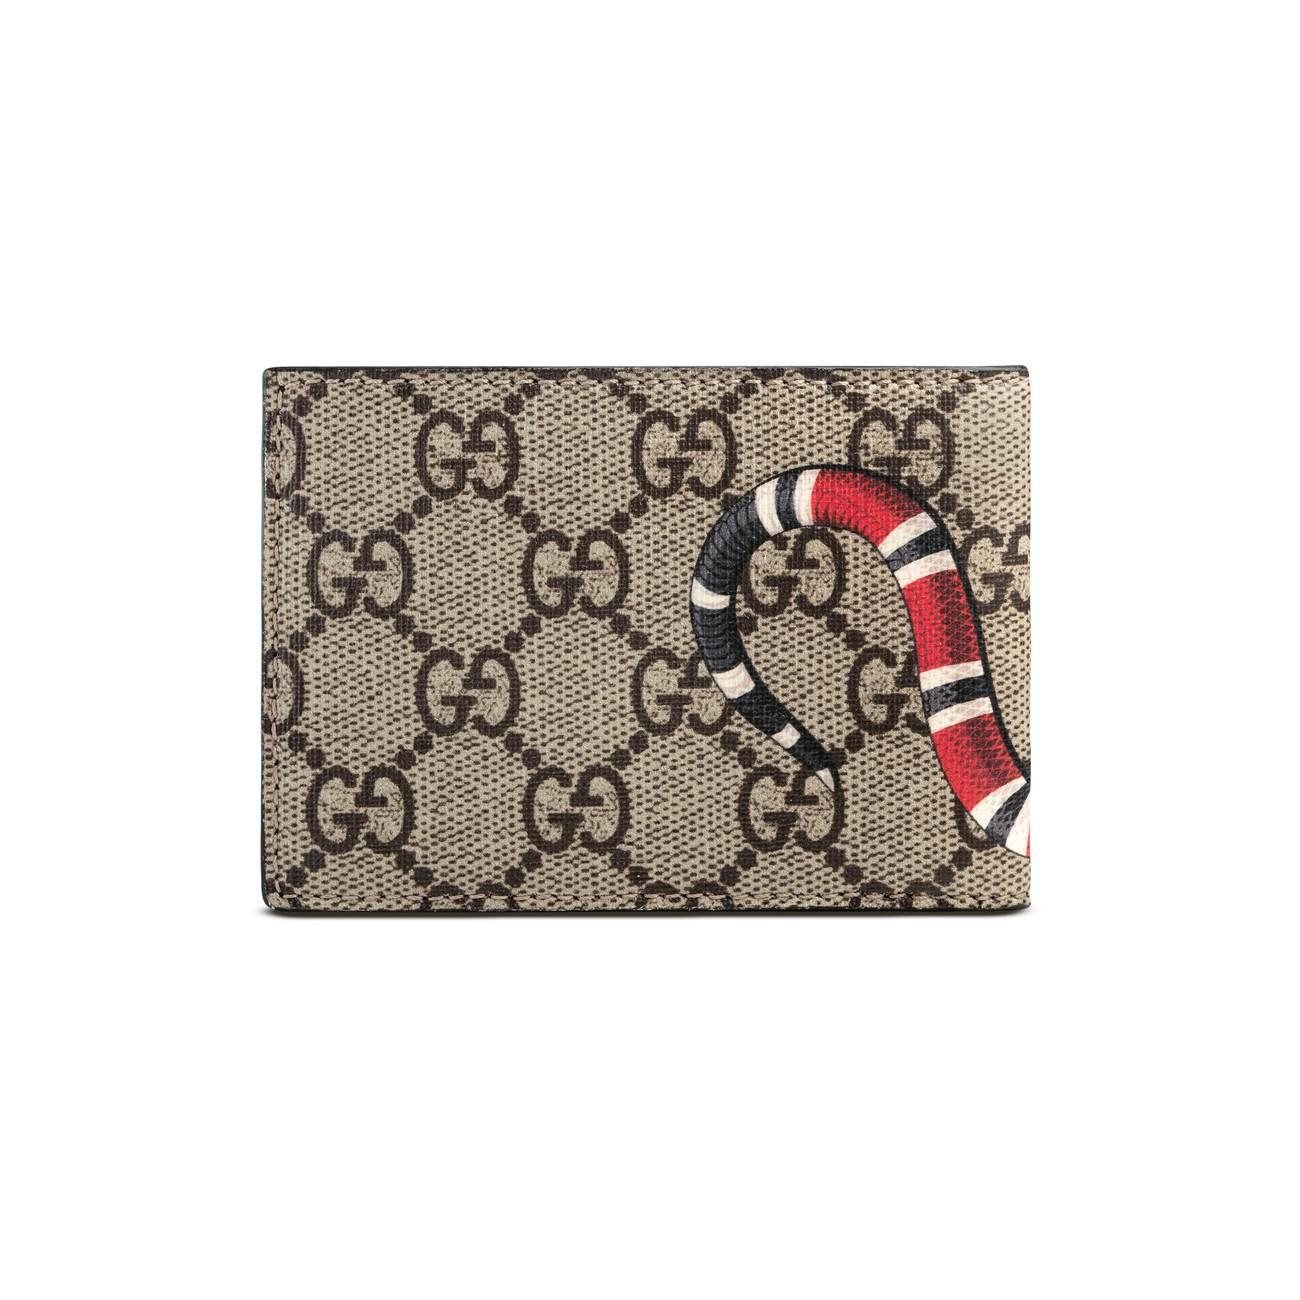 fc9a05cb60fd Gucci - Multicolor Kingsnake Print GG Supreme Wallet for Men - Lyst. View  fullscreen